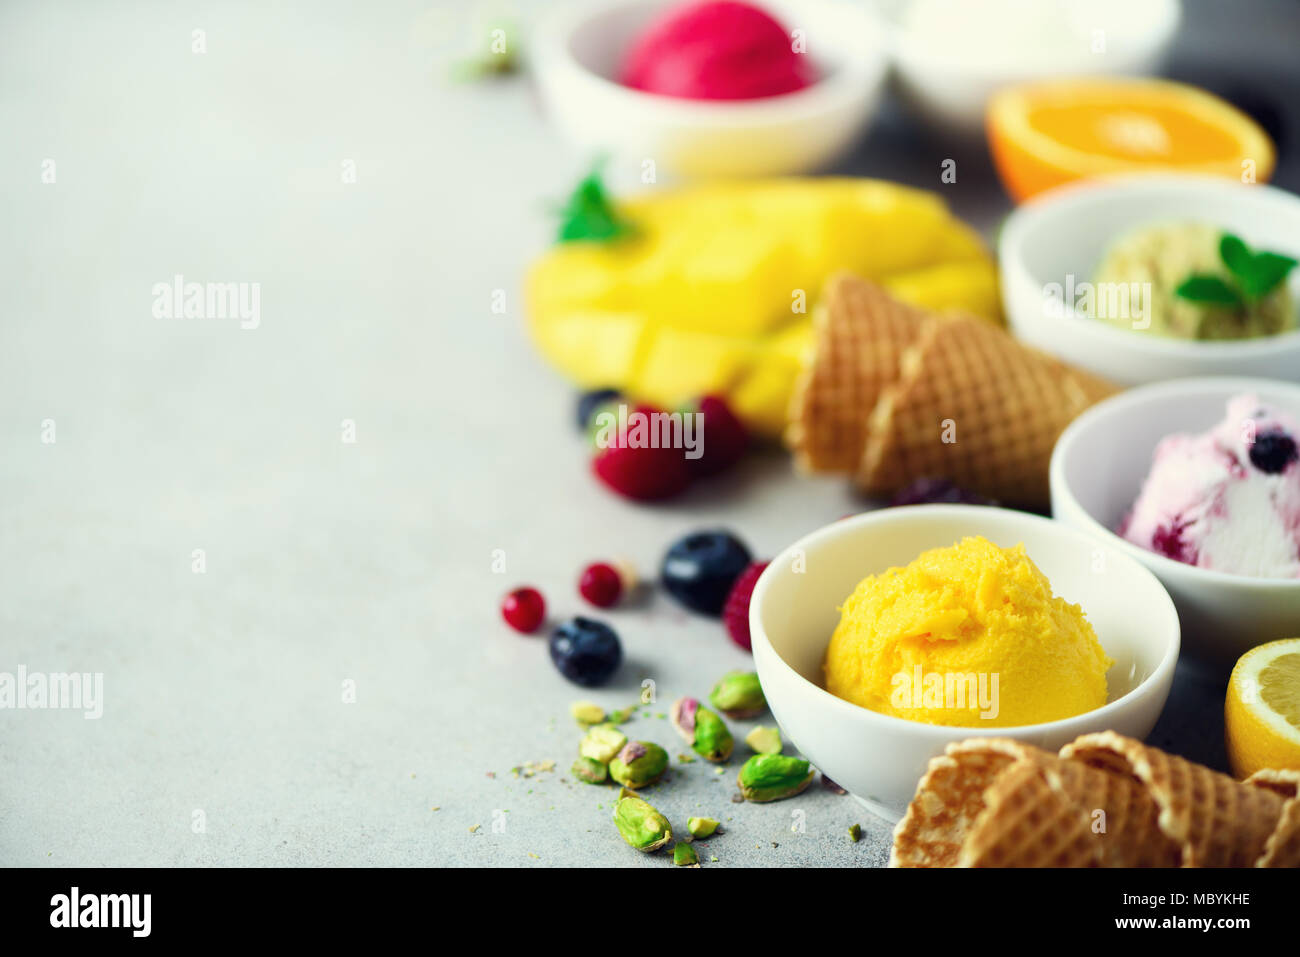 Ice cream balls in bowls, waffle cones, berries, orange, mango, pistachio on grey concrete background. Colorful collection, flat lay, summer concept - Stock Image